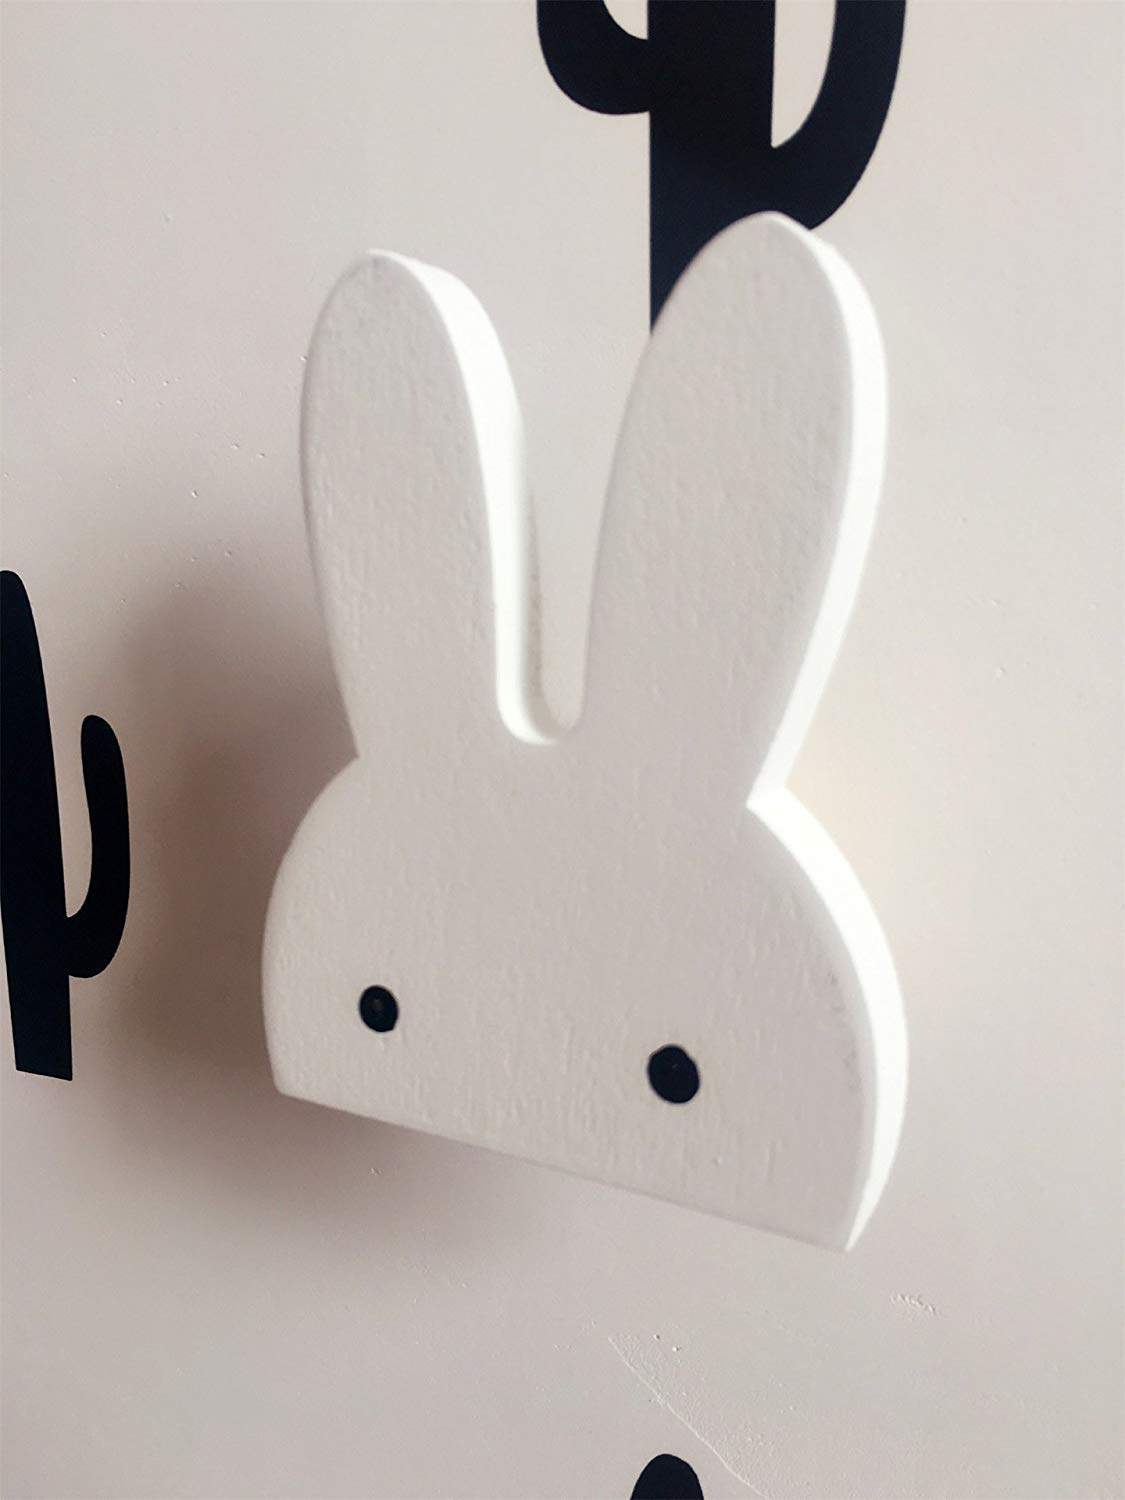 Decorate Your Home The Nordic Style Black and White Rabbit Room Children's wear Shop Manual Shop Wall Decoration Wooden Creative, Pink Rabbit Hook (Color : The Pink Rabbit Hook)